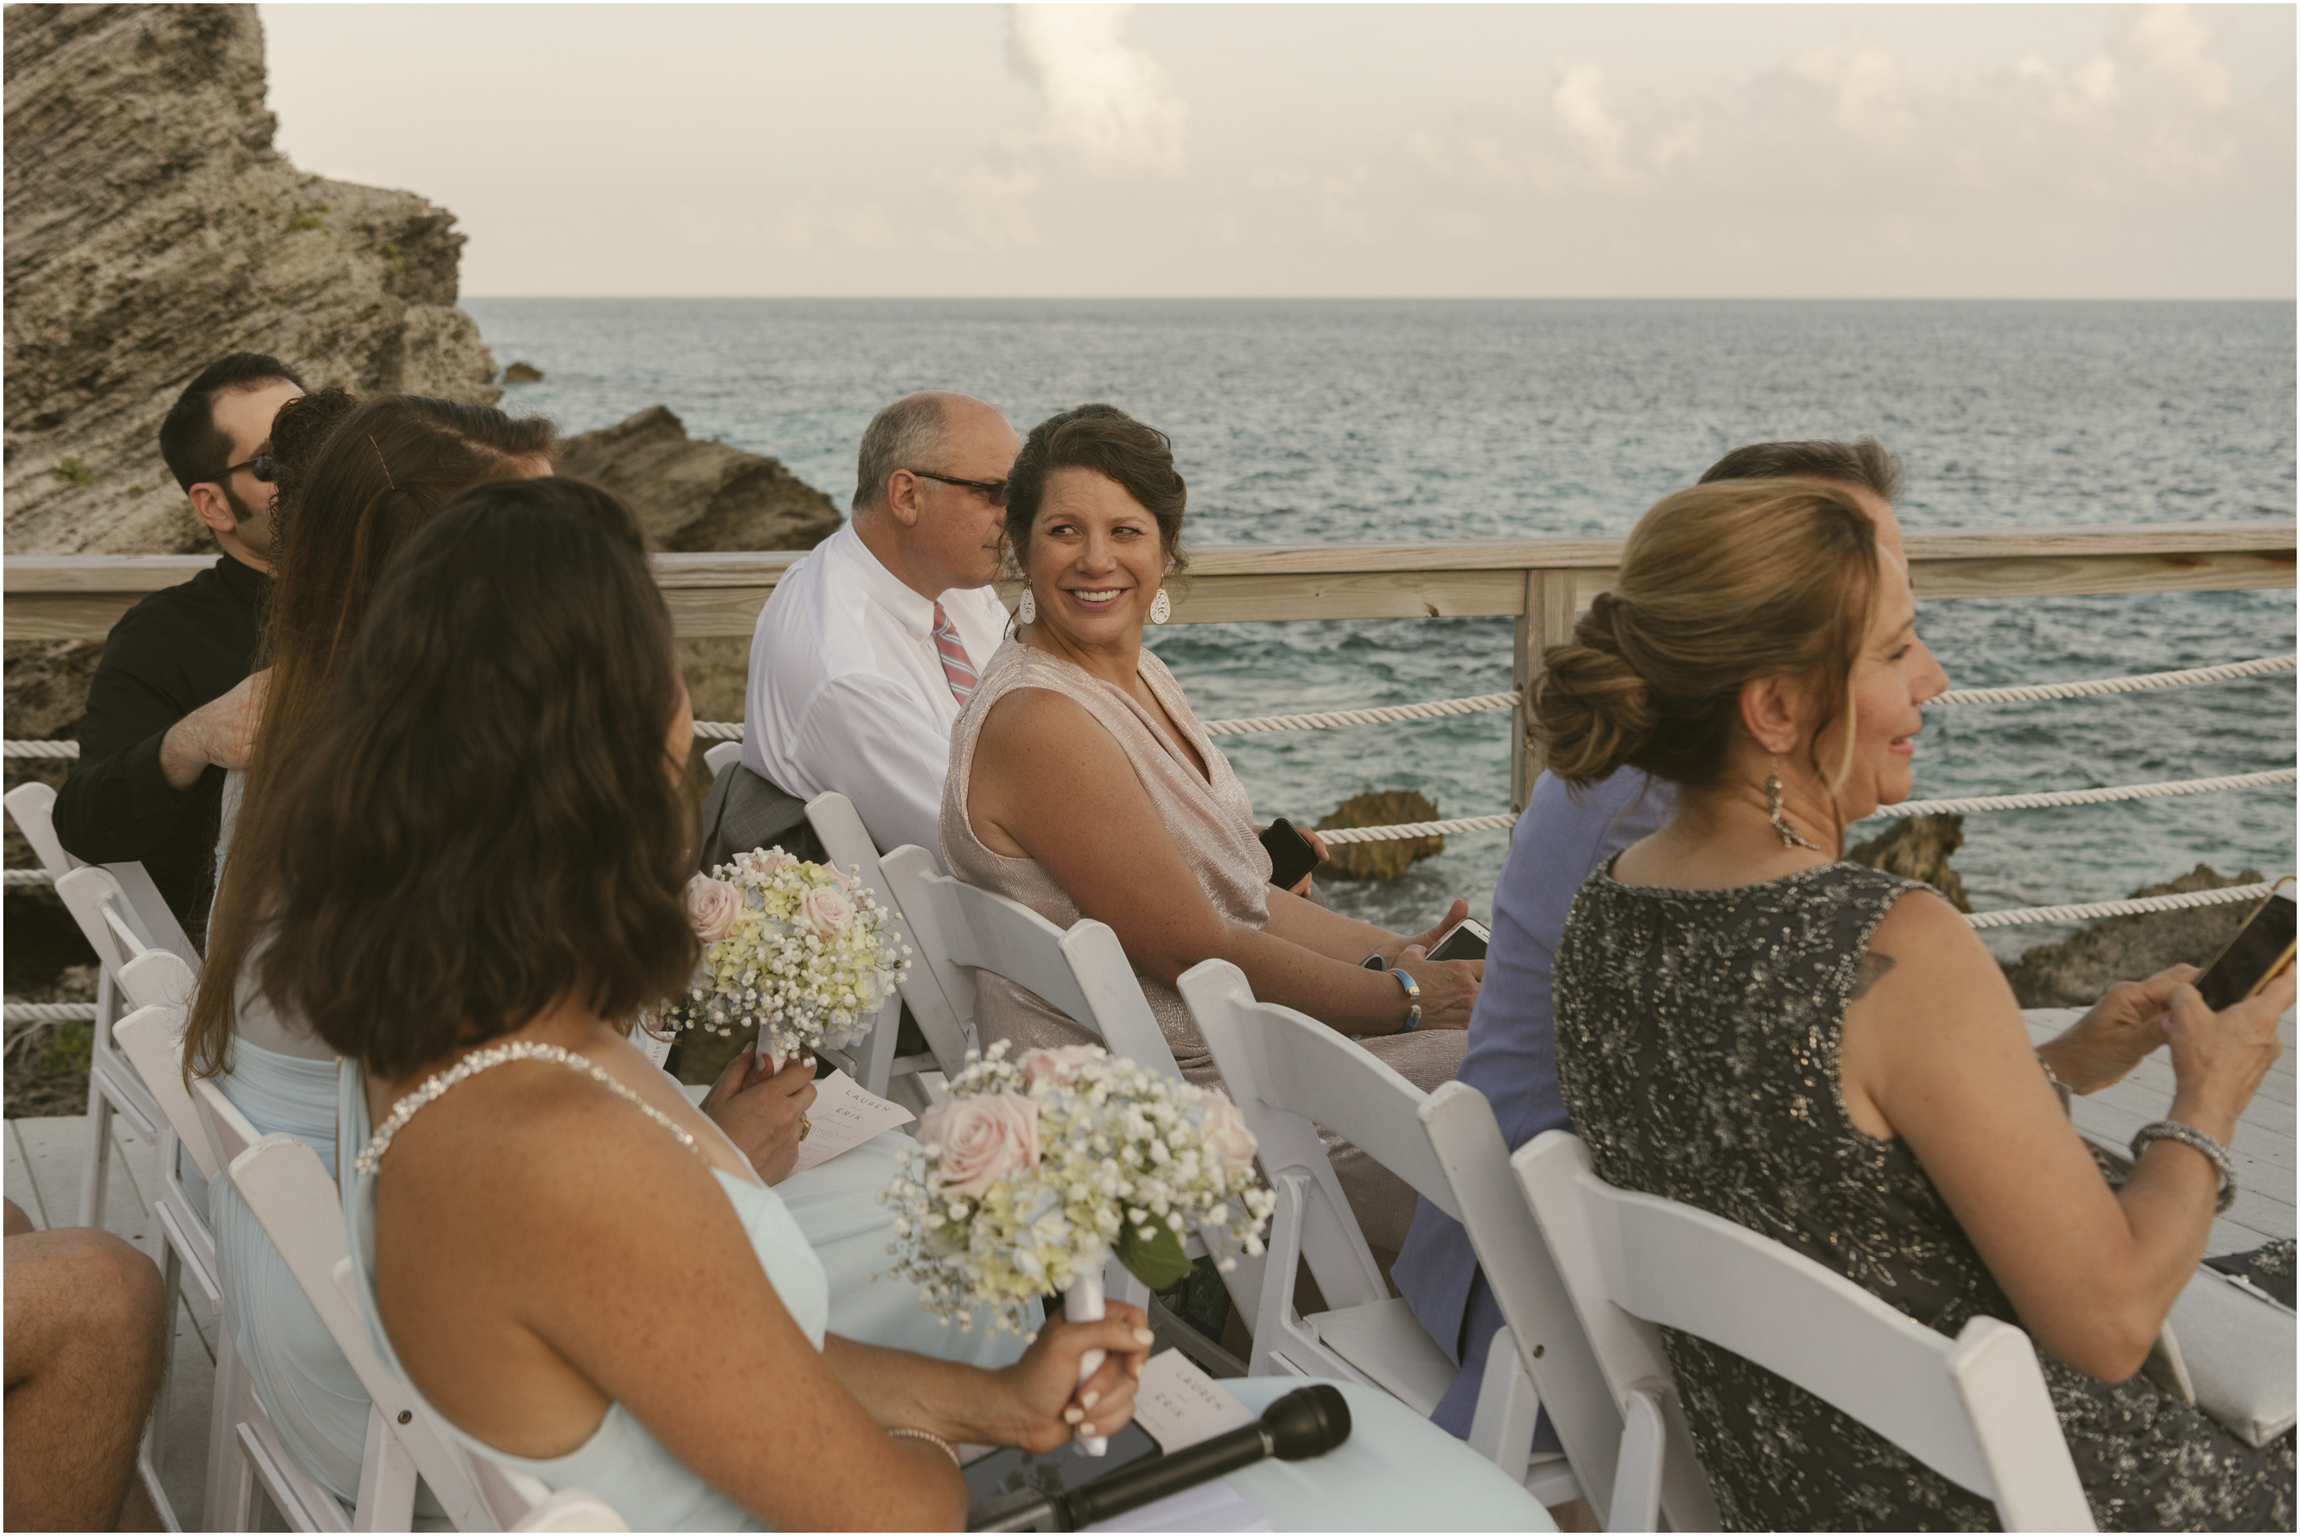 ©FianderFoto_Caribbean_Wedding_Photographer_The Reefs_Bermuda_Lauren_Erik_067.jpg